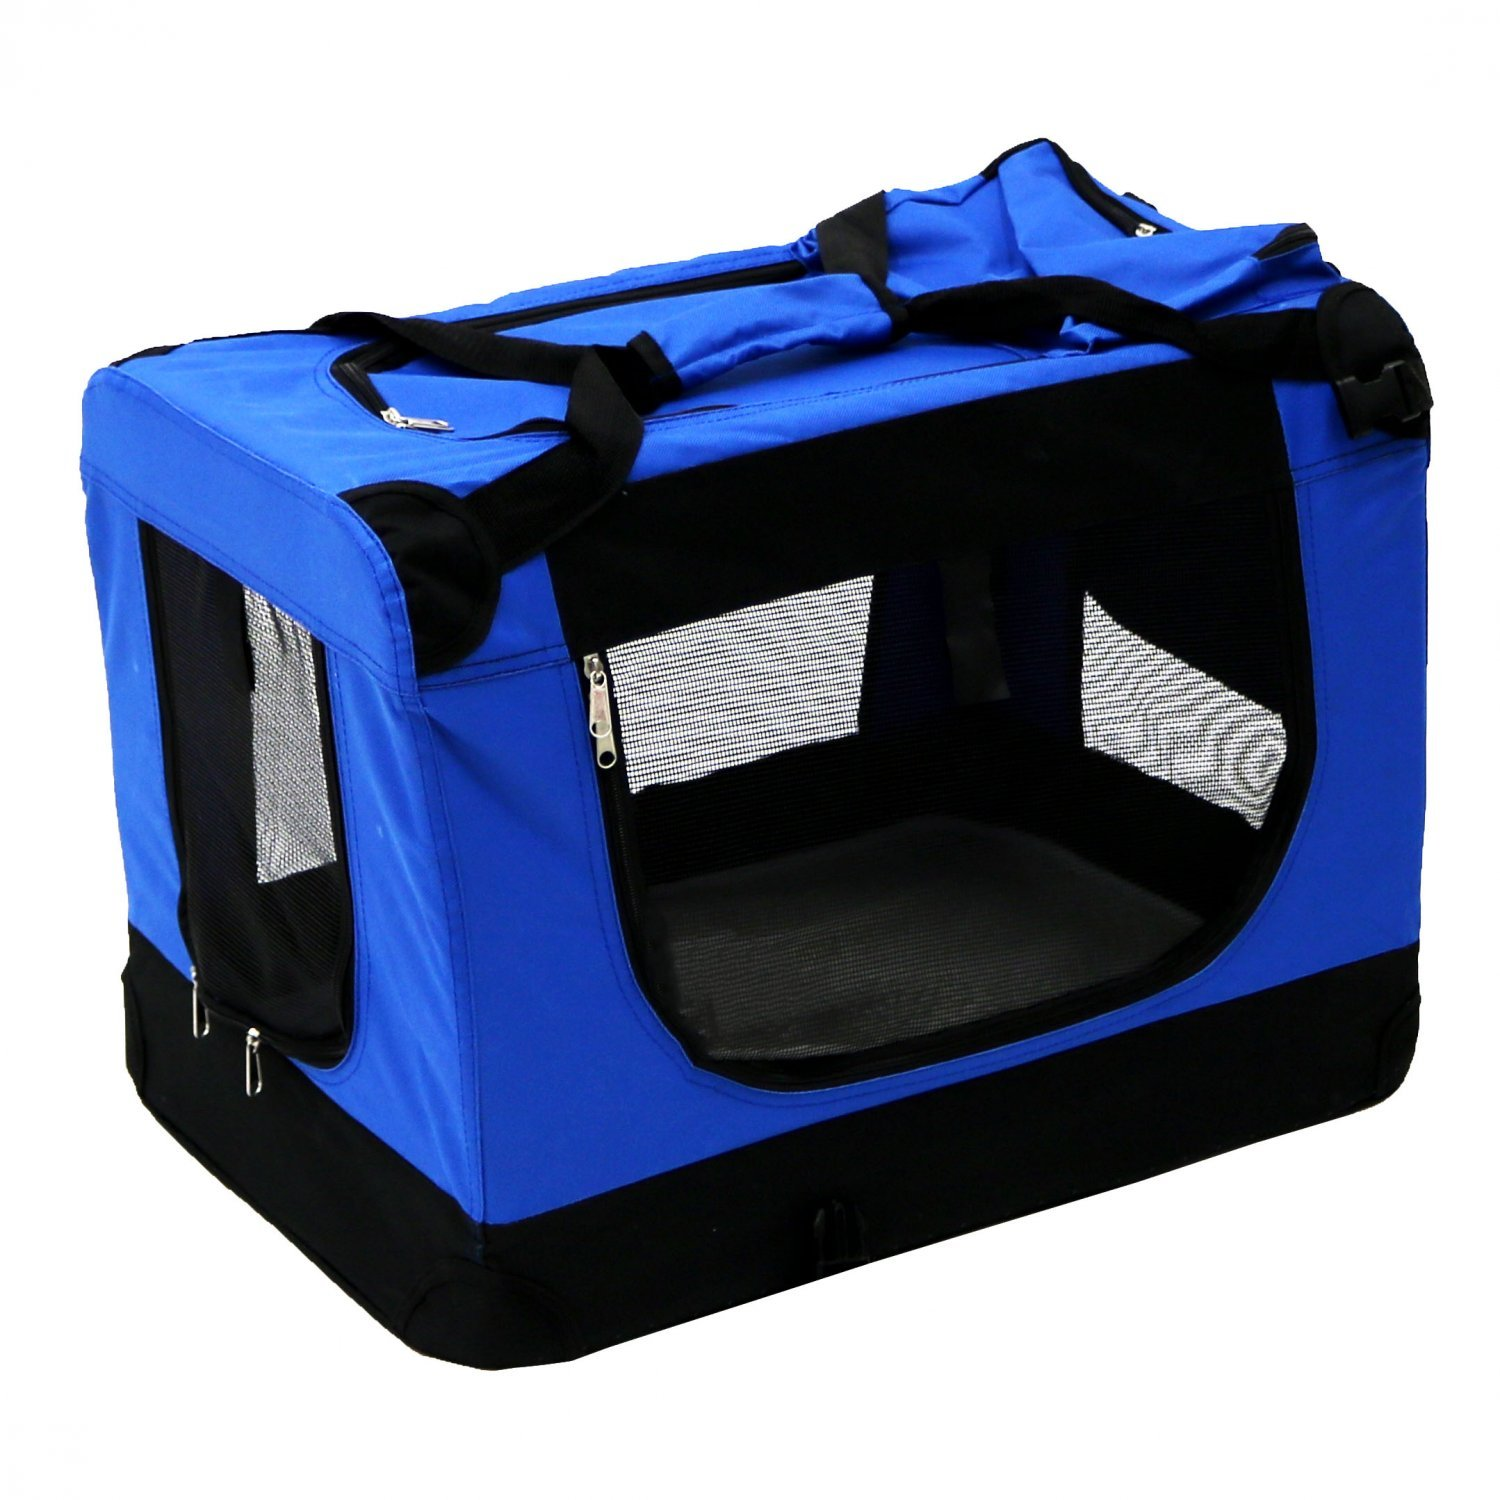 Portable Pet Dog Cat Rabbit Puppy Carrier Transport Crate Cage